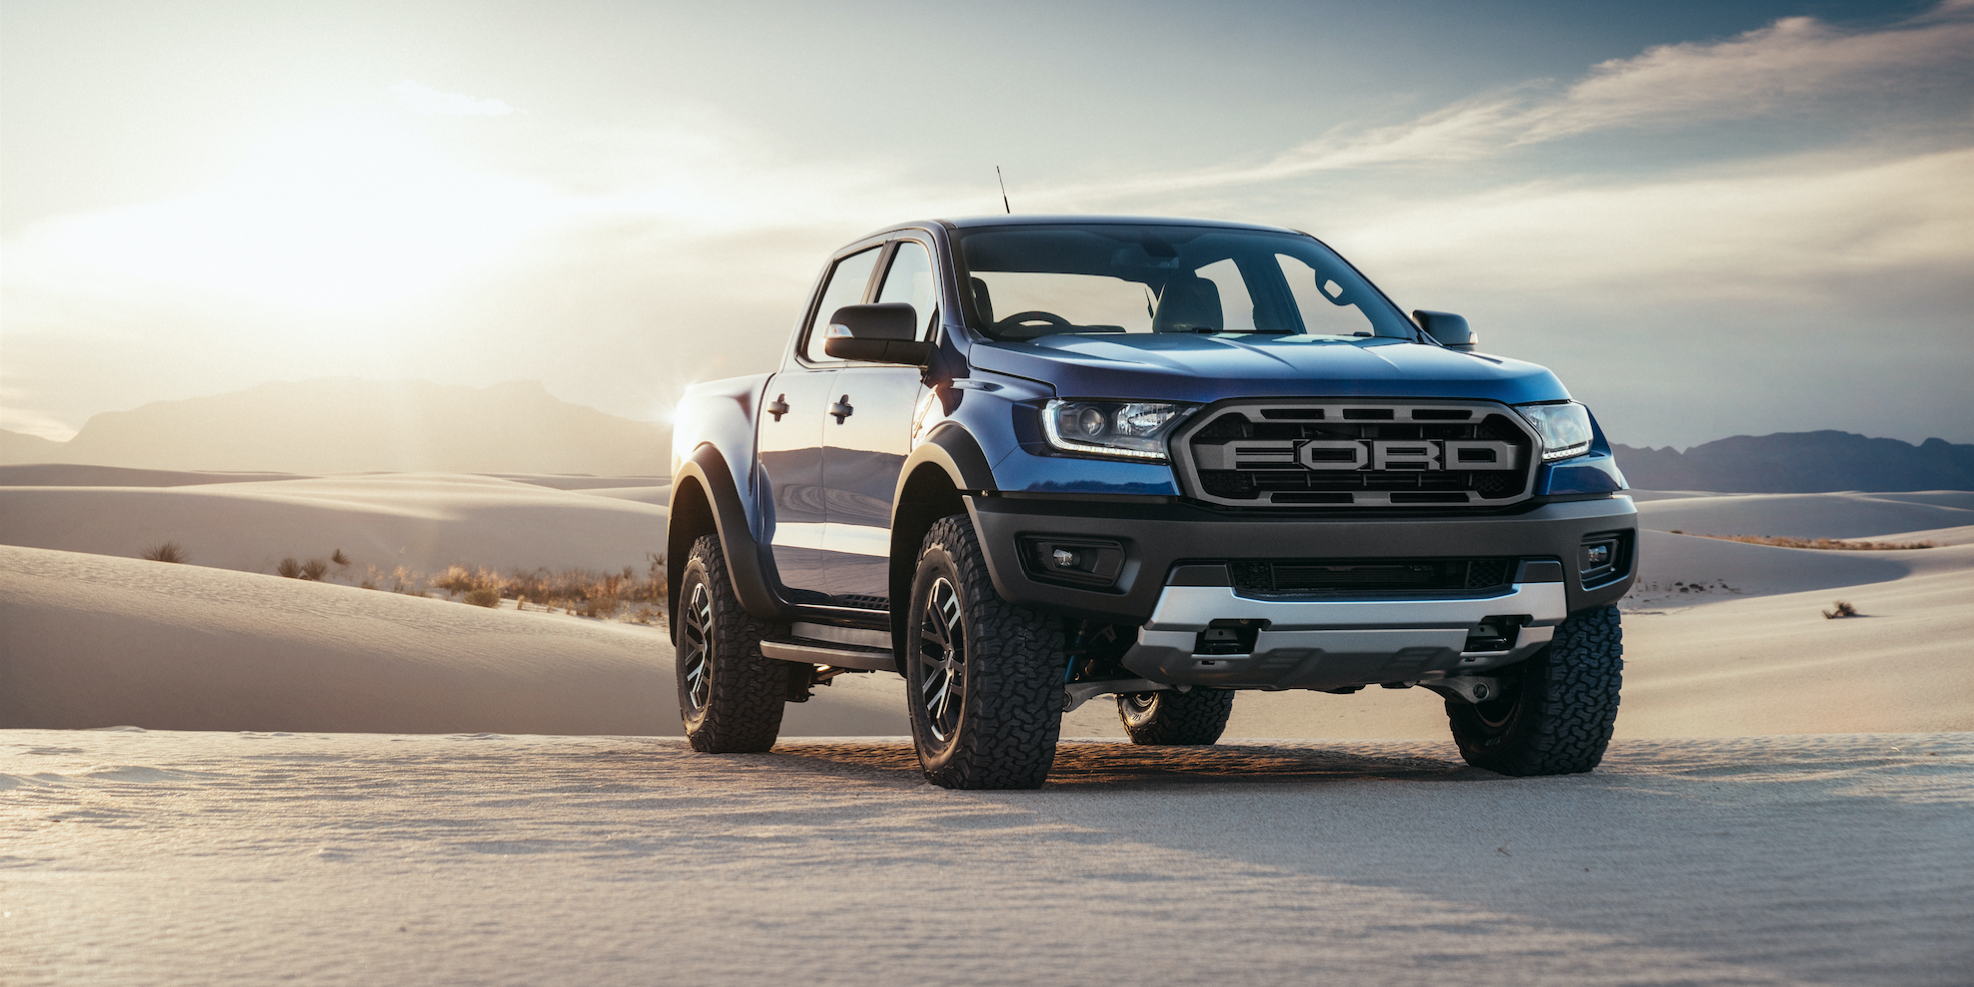 Ford Raptor Inside >> 2019 Ford Ranger Raptor Info, Pictures, and Pricing - New Ranger Raptor Revealed